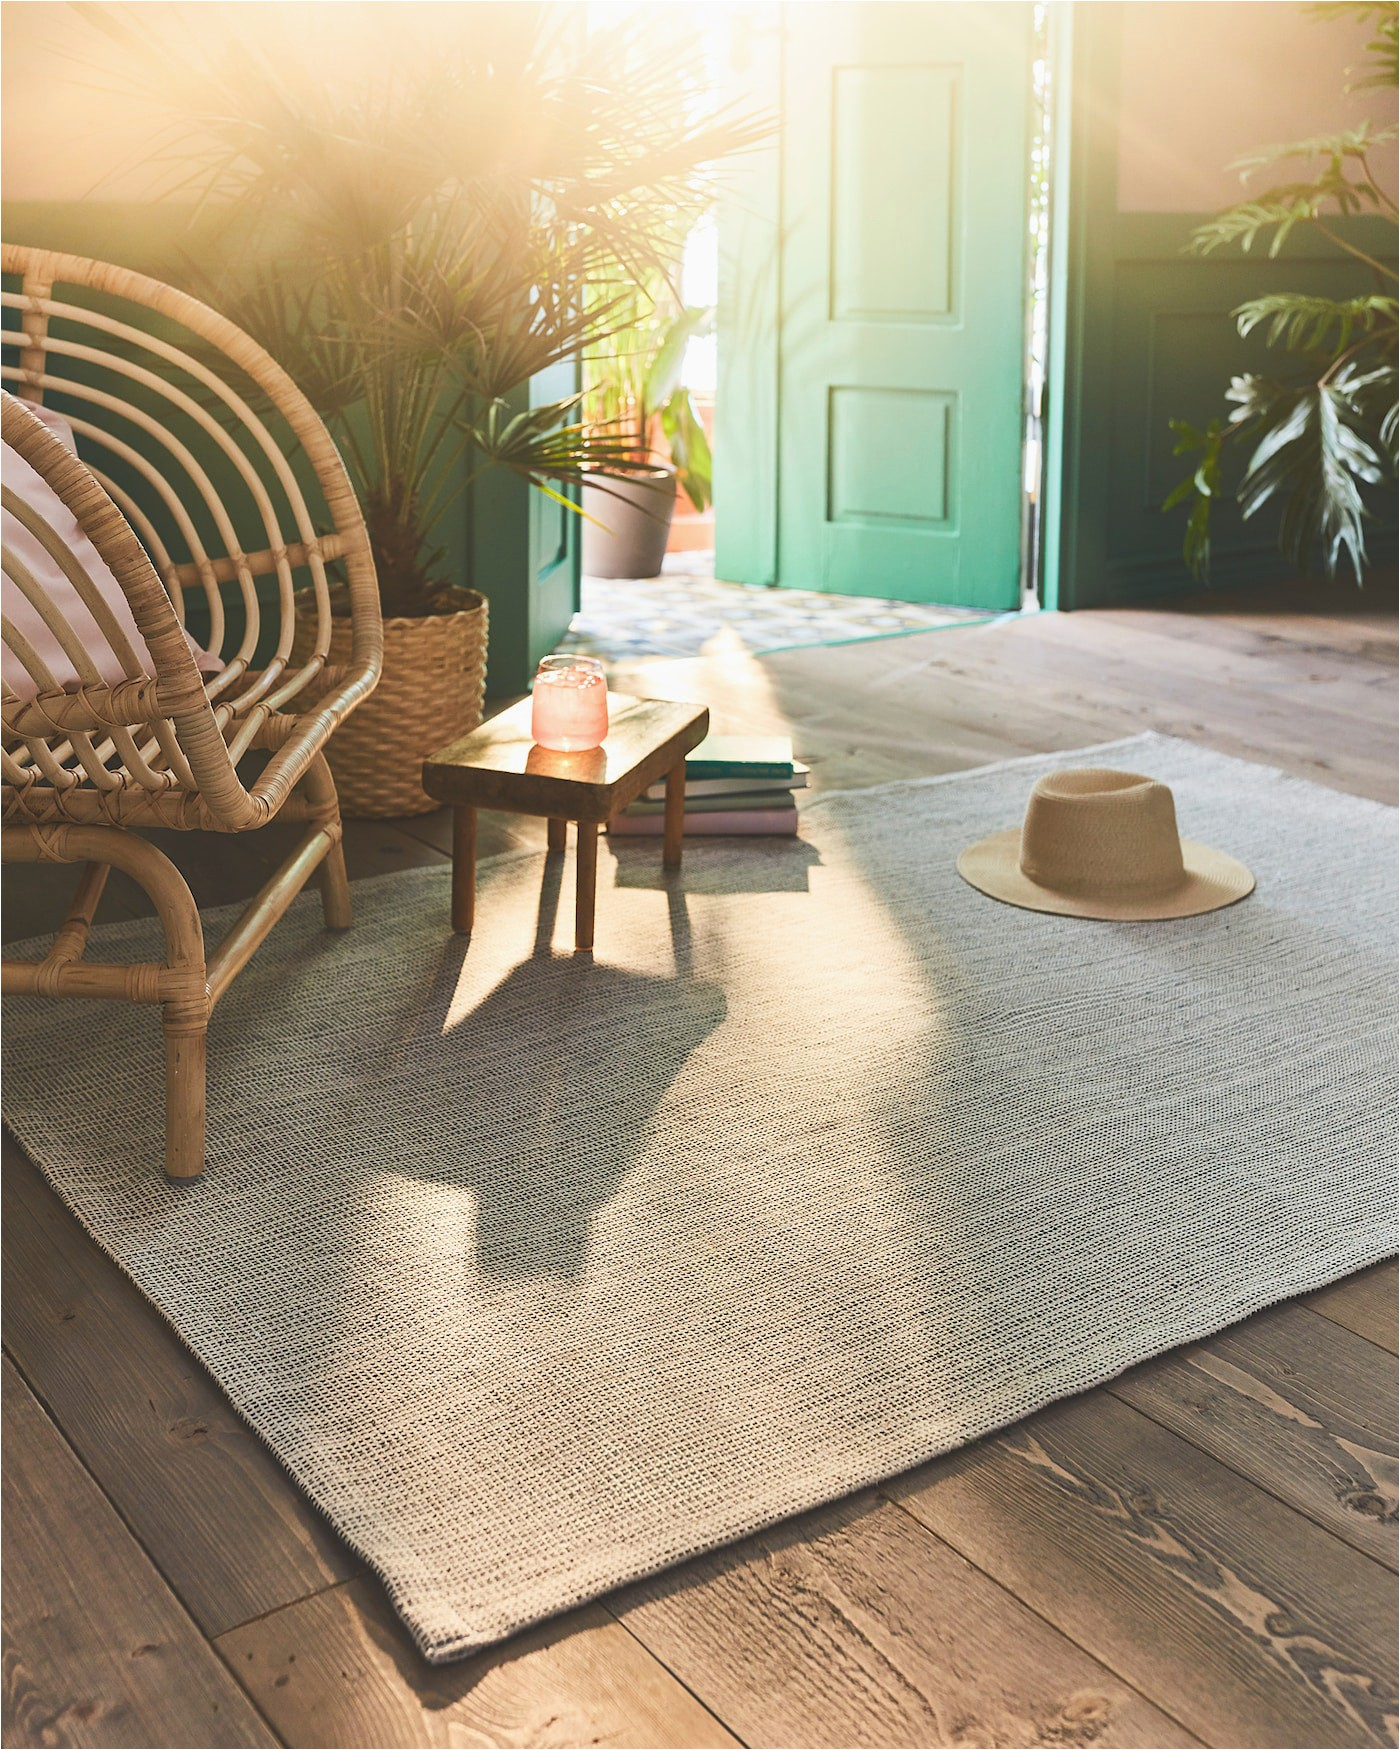 tiphede rug flatwoven natural off white PH S5 JPG